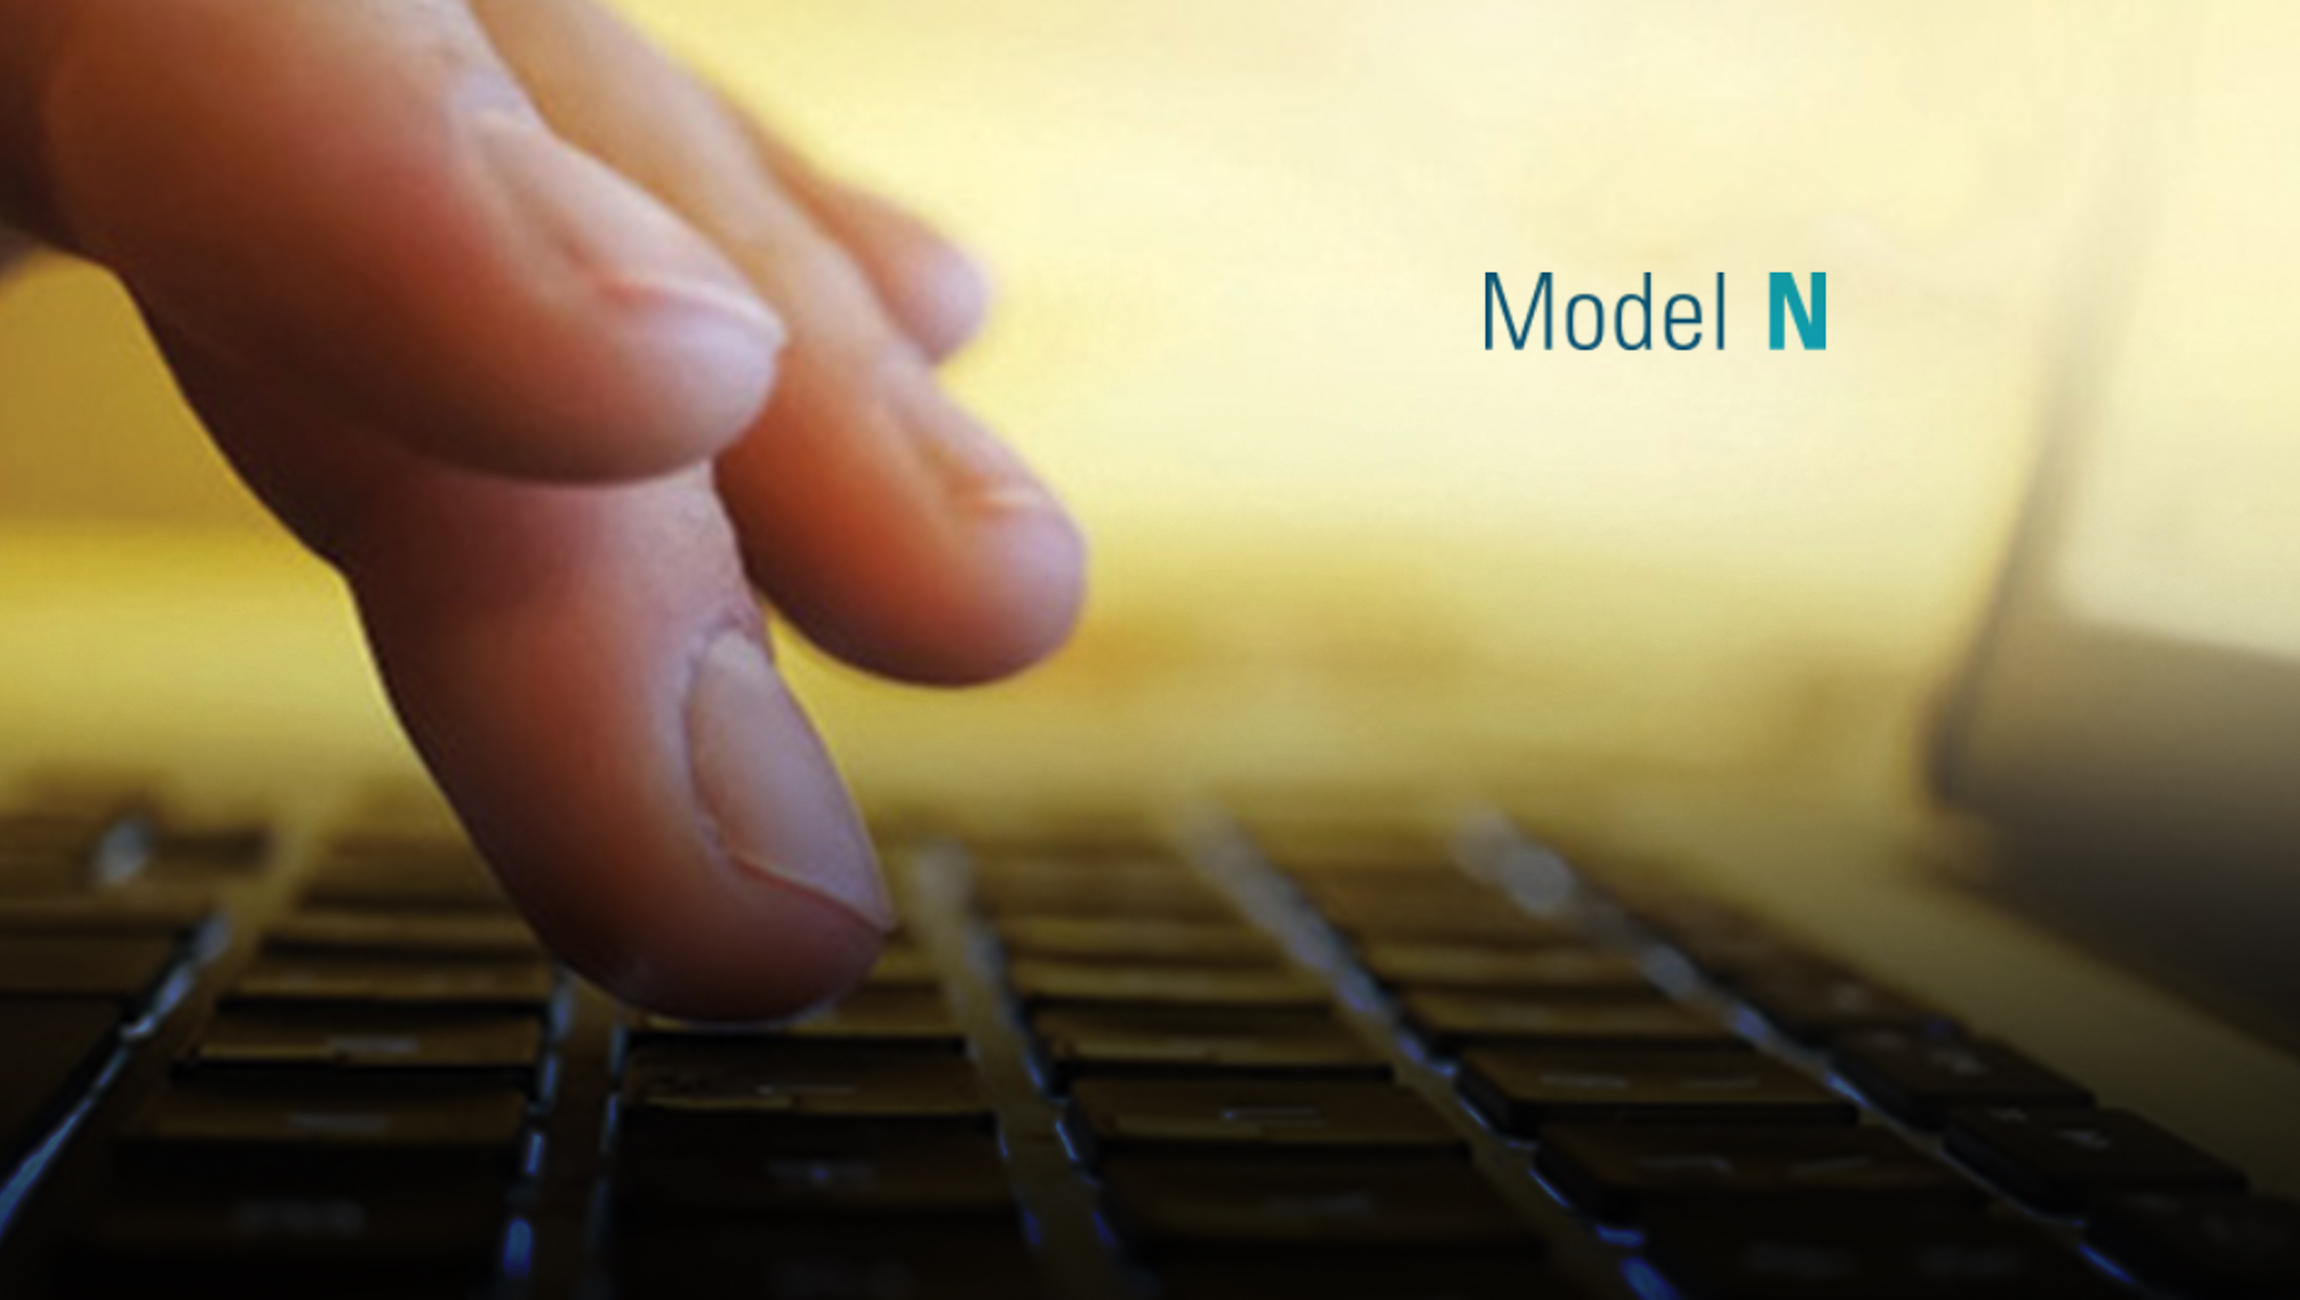 Model N Study: Improved Channel Data Optimizes Sales and Profitability for High-Tech and B2B Software Companies